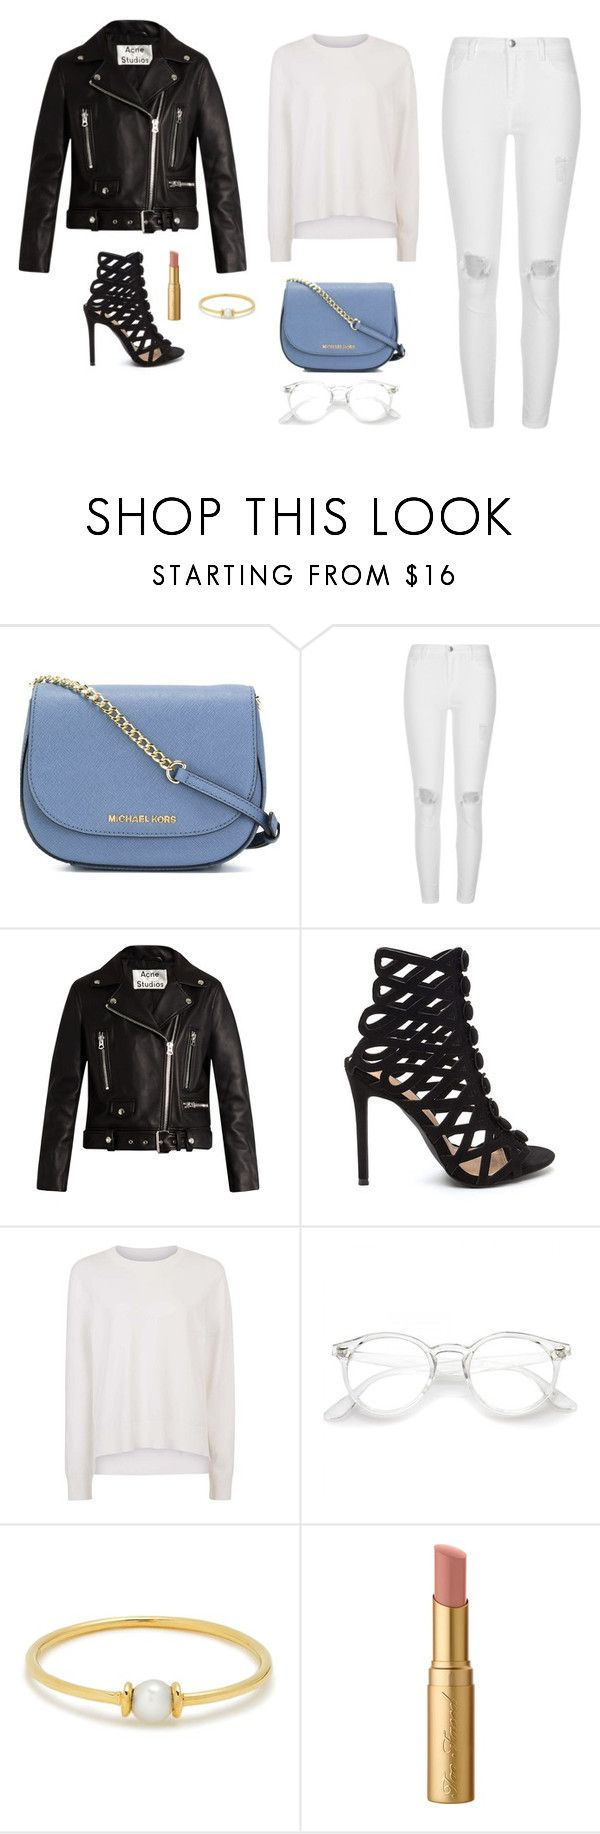 """""""Untitled #1533"""" by alex-gucka ❤ liked on Polyvore featuring MICHAEL Michael Kors, River Island, Acne Studios, Sweaty Betty, Anissa Kermiche and Too Faced Cosmetics"""